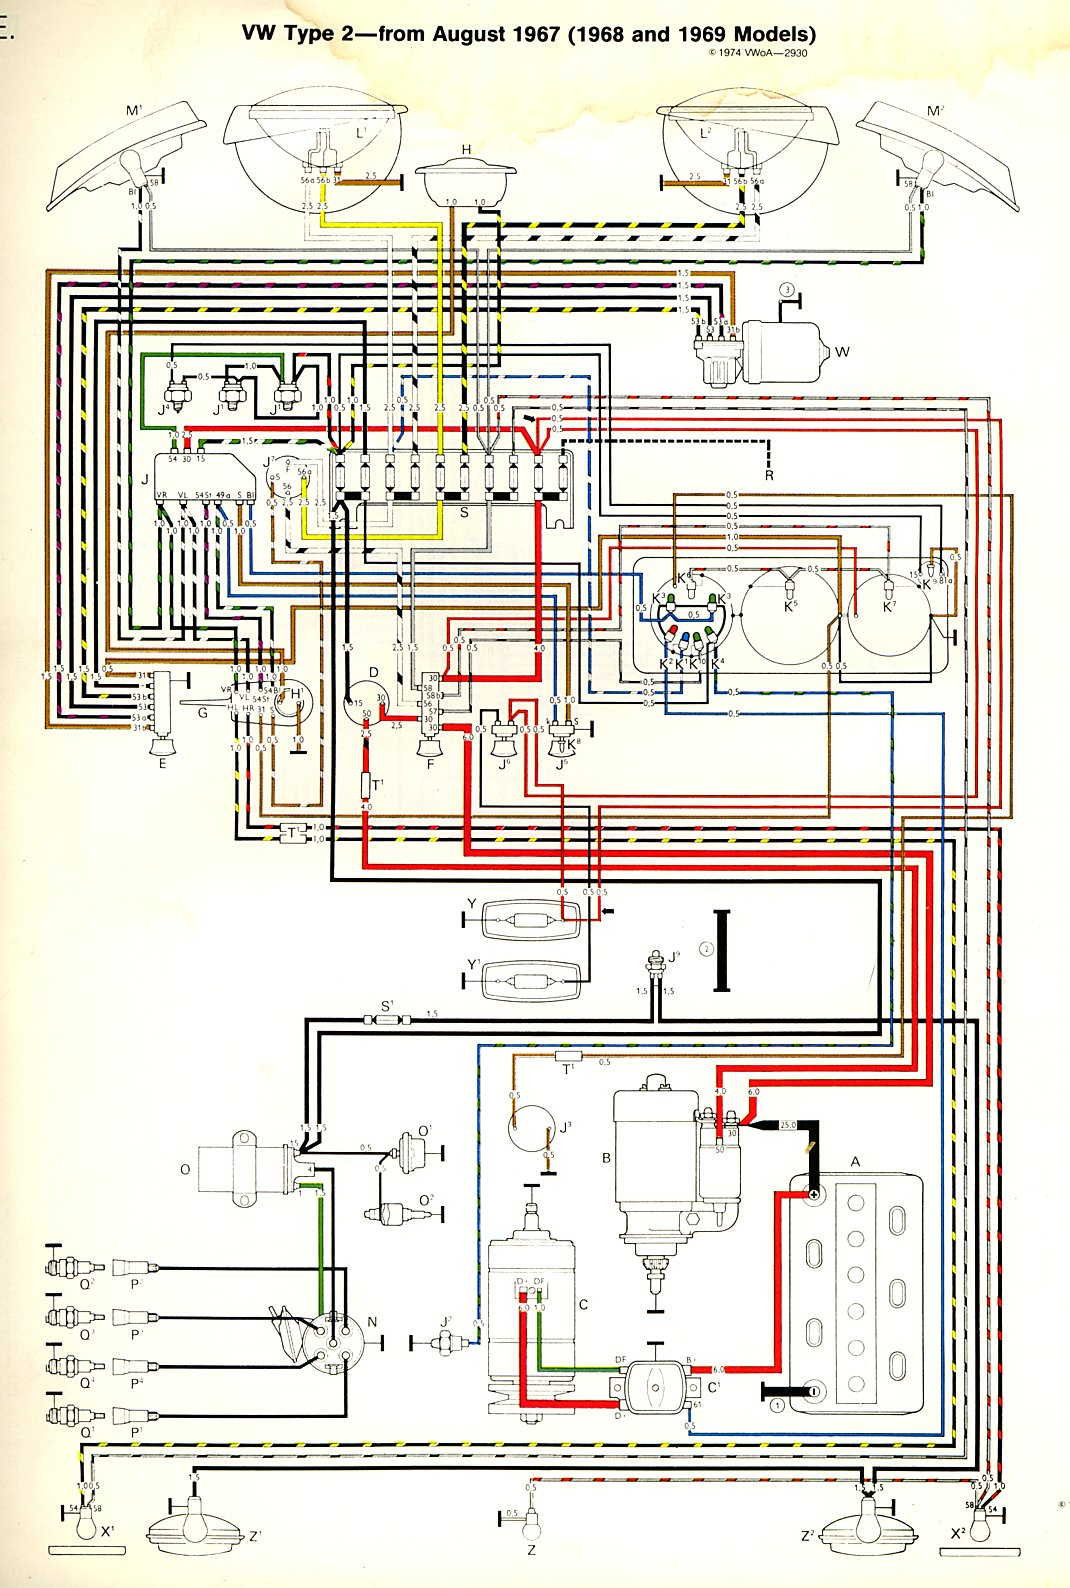 baybus_6869a 1968 69 bus wiring diagram thegoldenbug com find wiring diagram for 87 ford f 150 at eliteediting.co